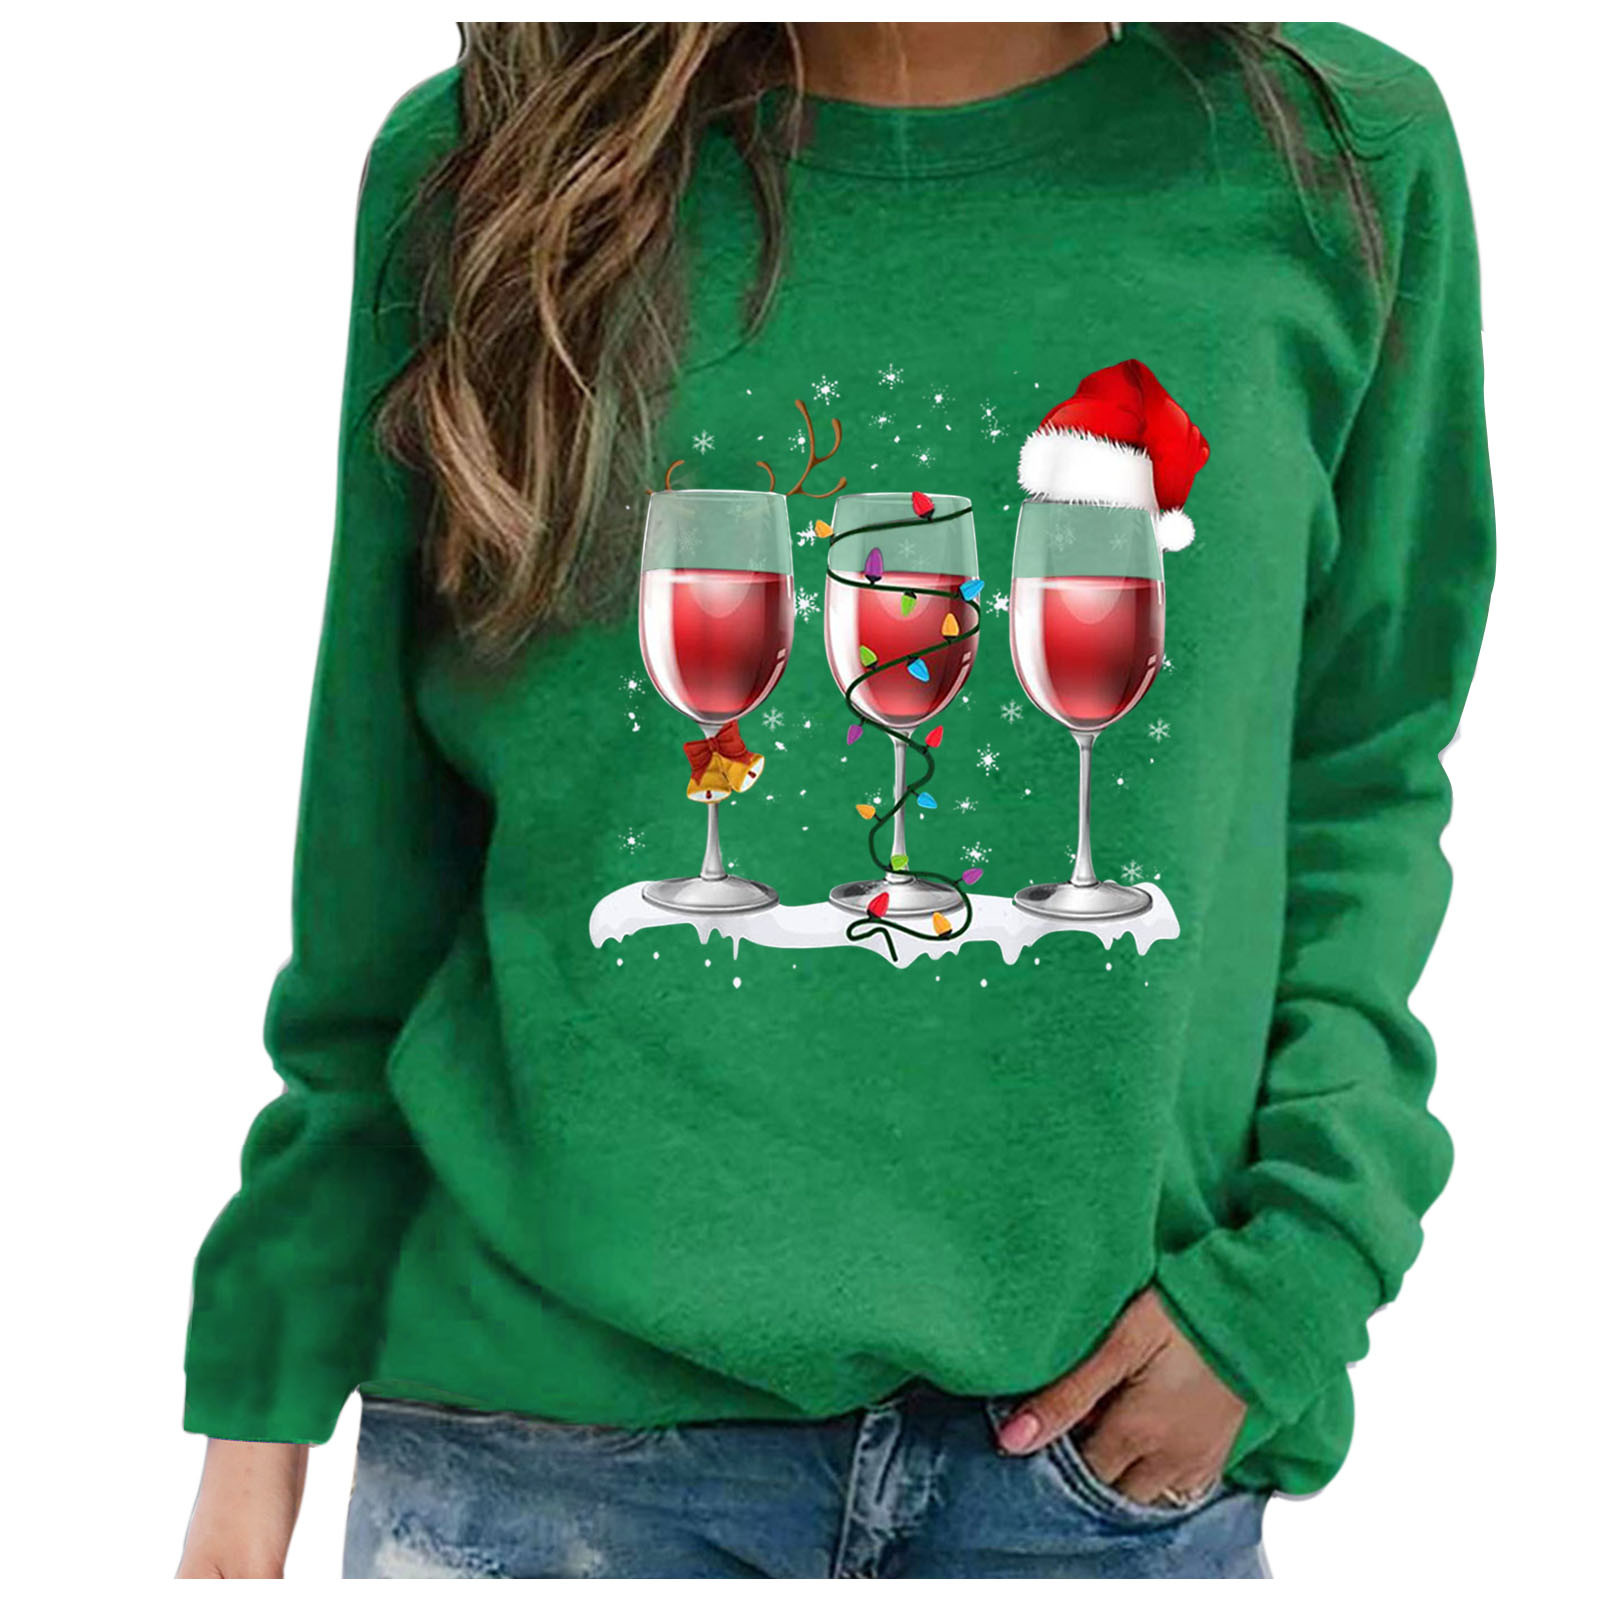 4# 2020 Fashion Christmas Women's Sweaters Christmas Print Long sleeved Sweaters Casual Top Loose Sweaters Pullover Female